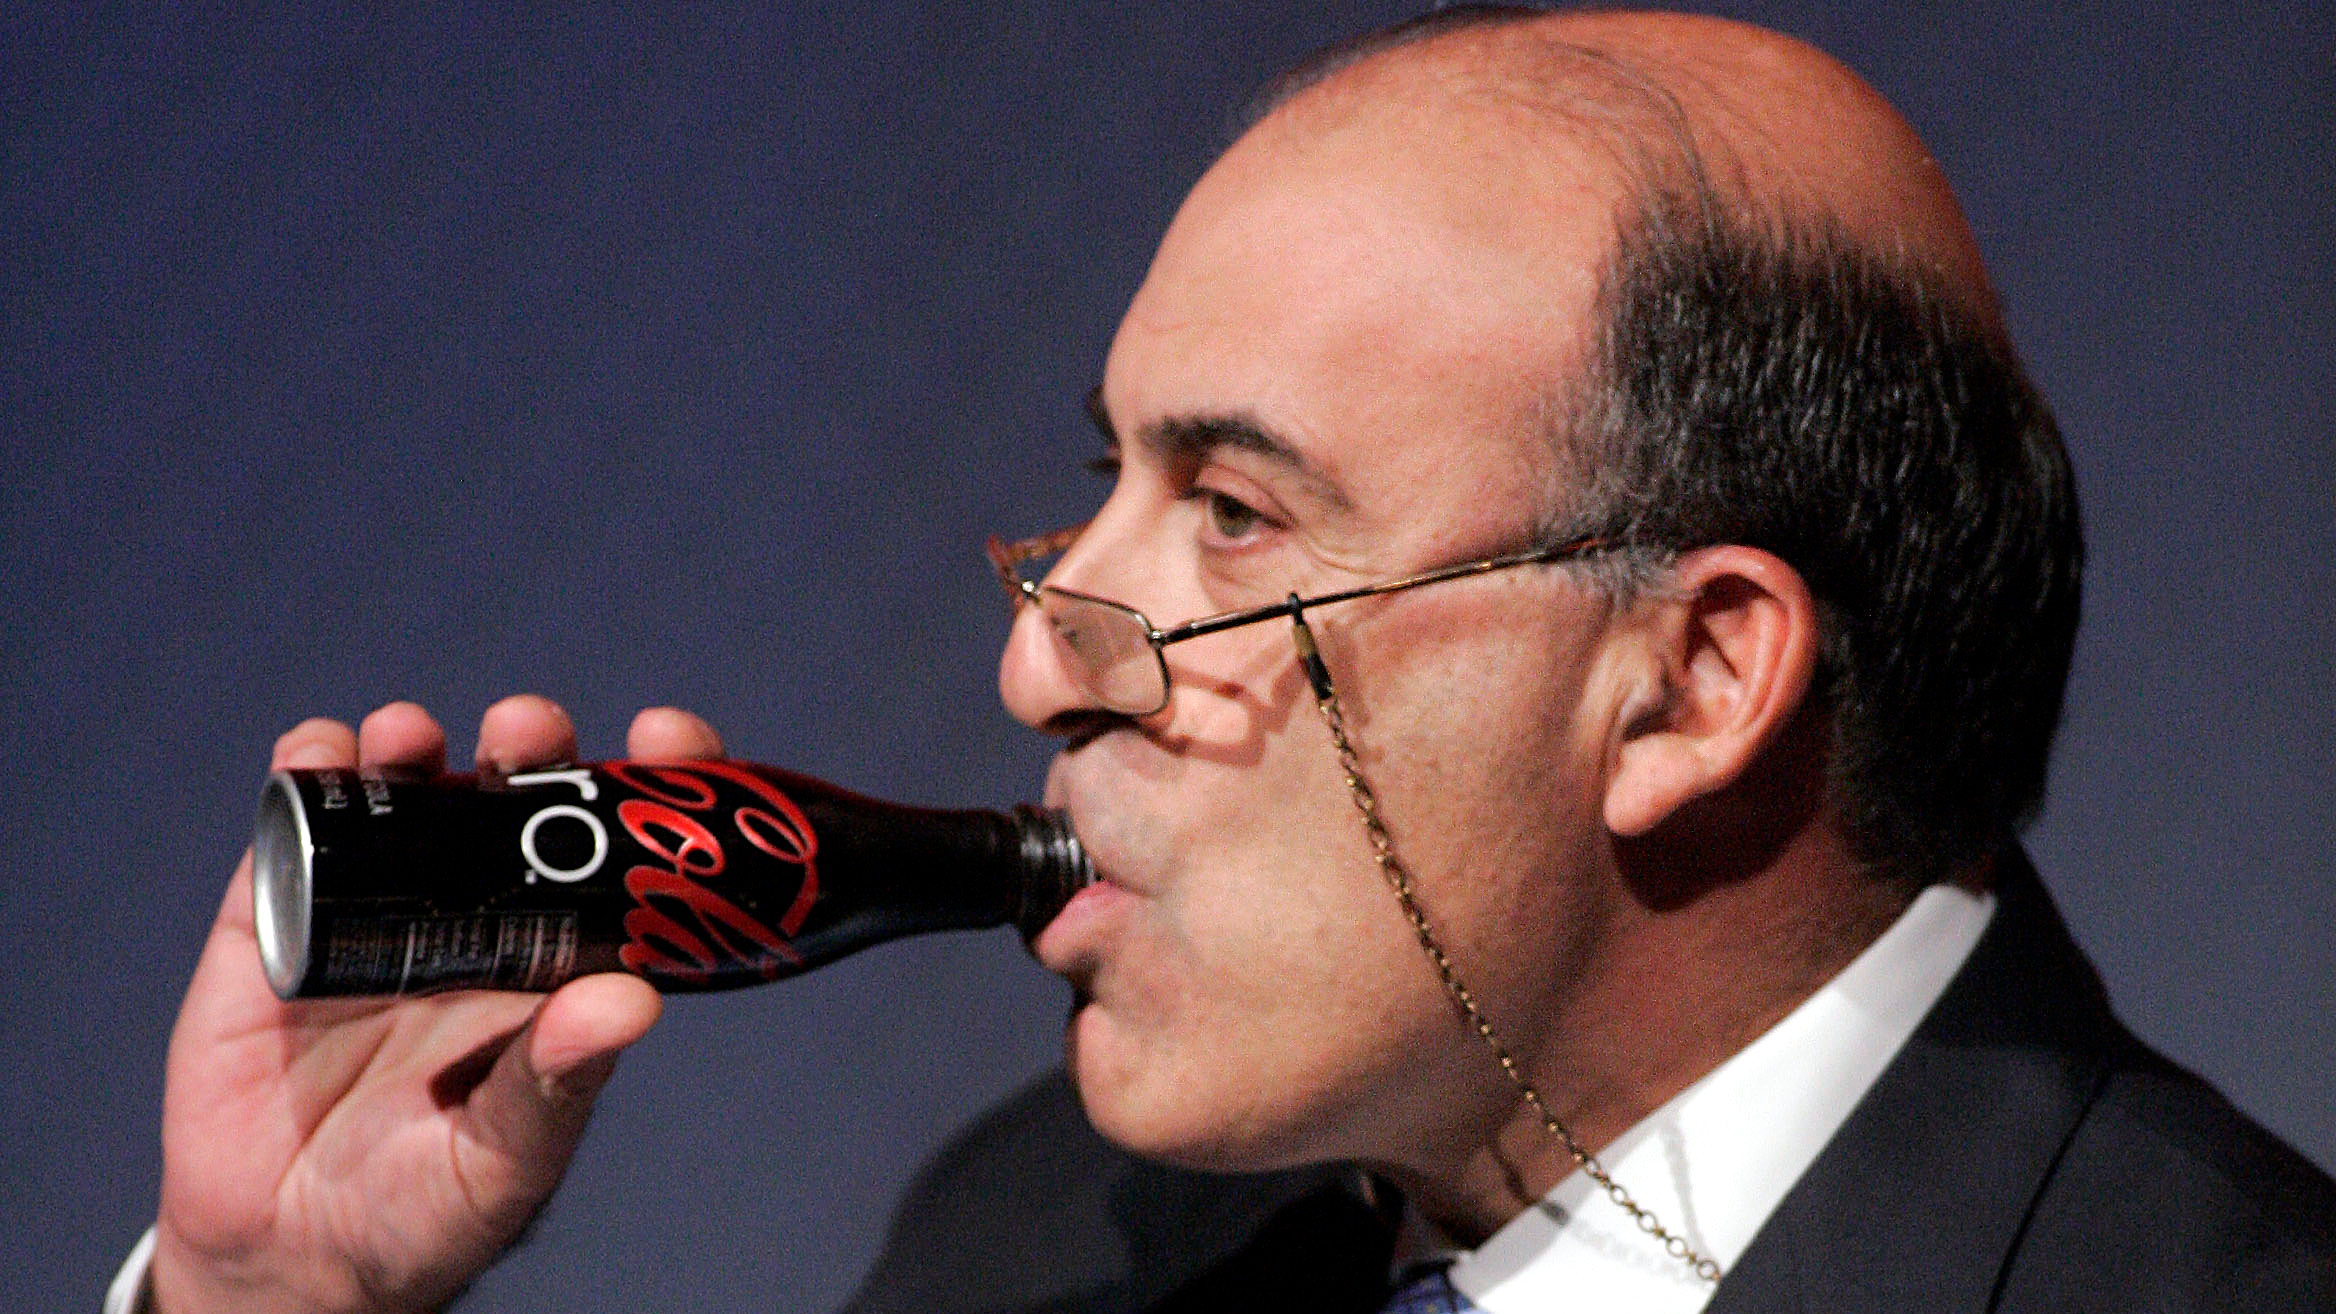 Coca-Cola CEO Muhtar Kent takes a drink of a Coca-Cola Zero while addressing investors at a conference in which a vision for the future of the company is announced, Monday Nov. 16, 2009, in Atlanta.